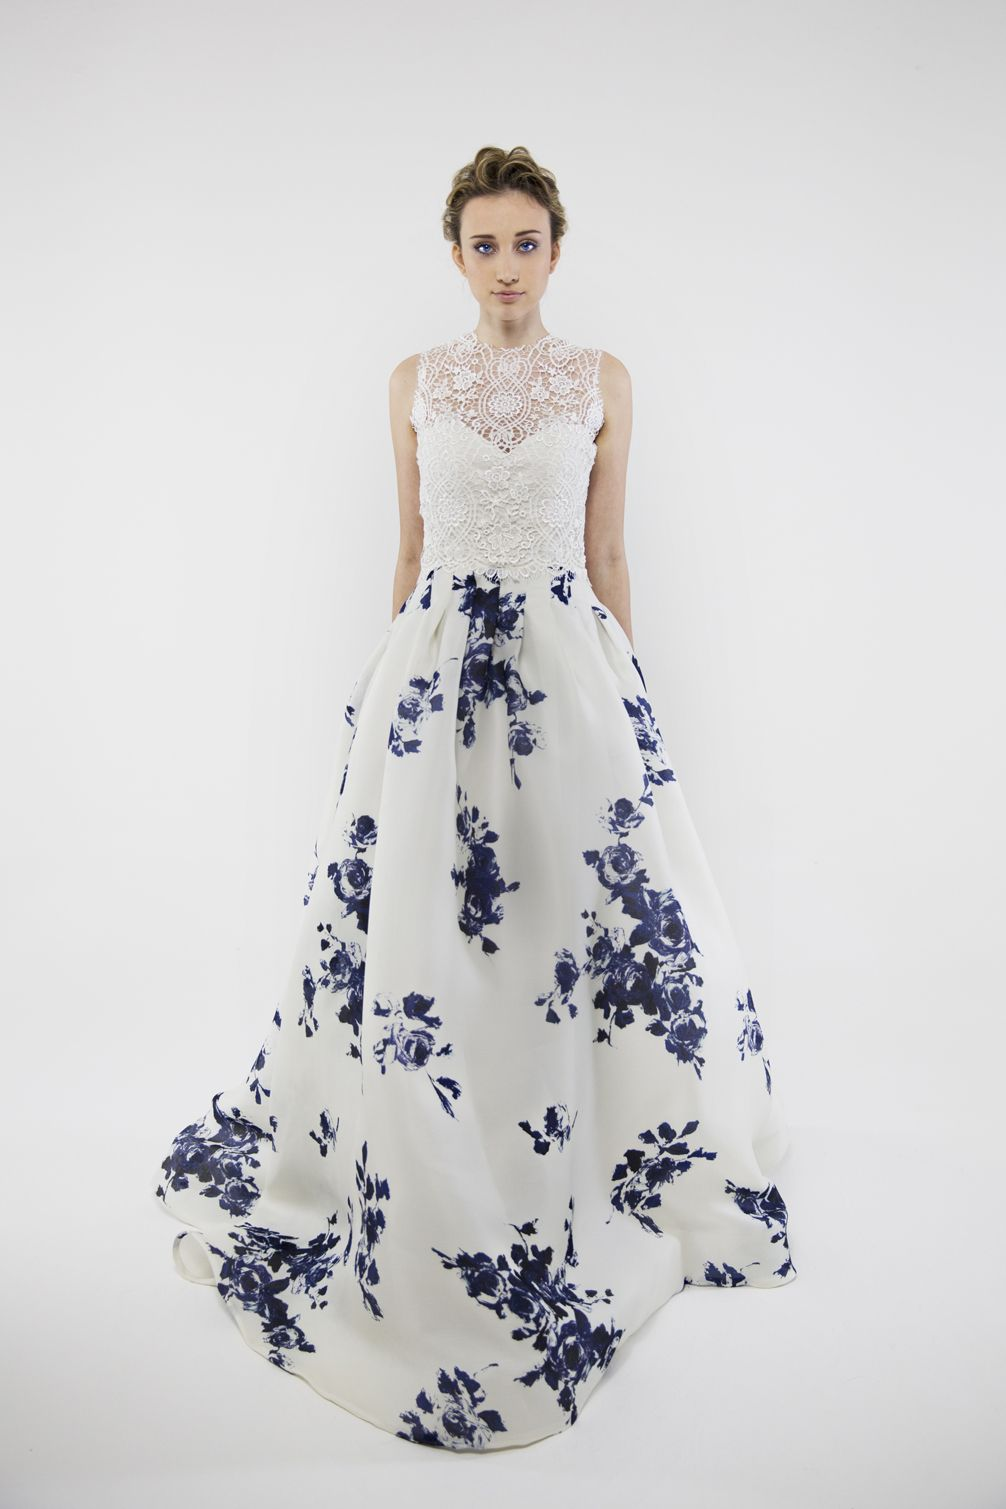 20 Floral Wedding Dresses That Will Take Your Breath Away Printed Wedding Dress Floral Wedding Dress Wedding Dresses 2014